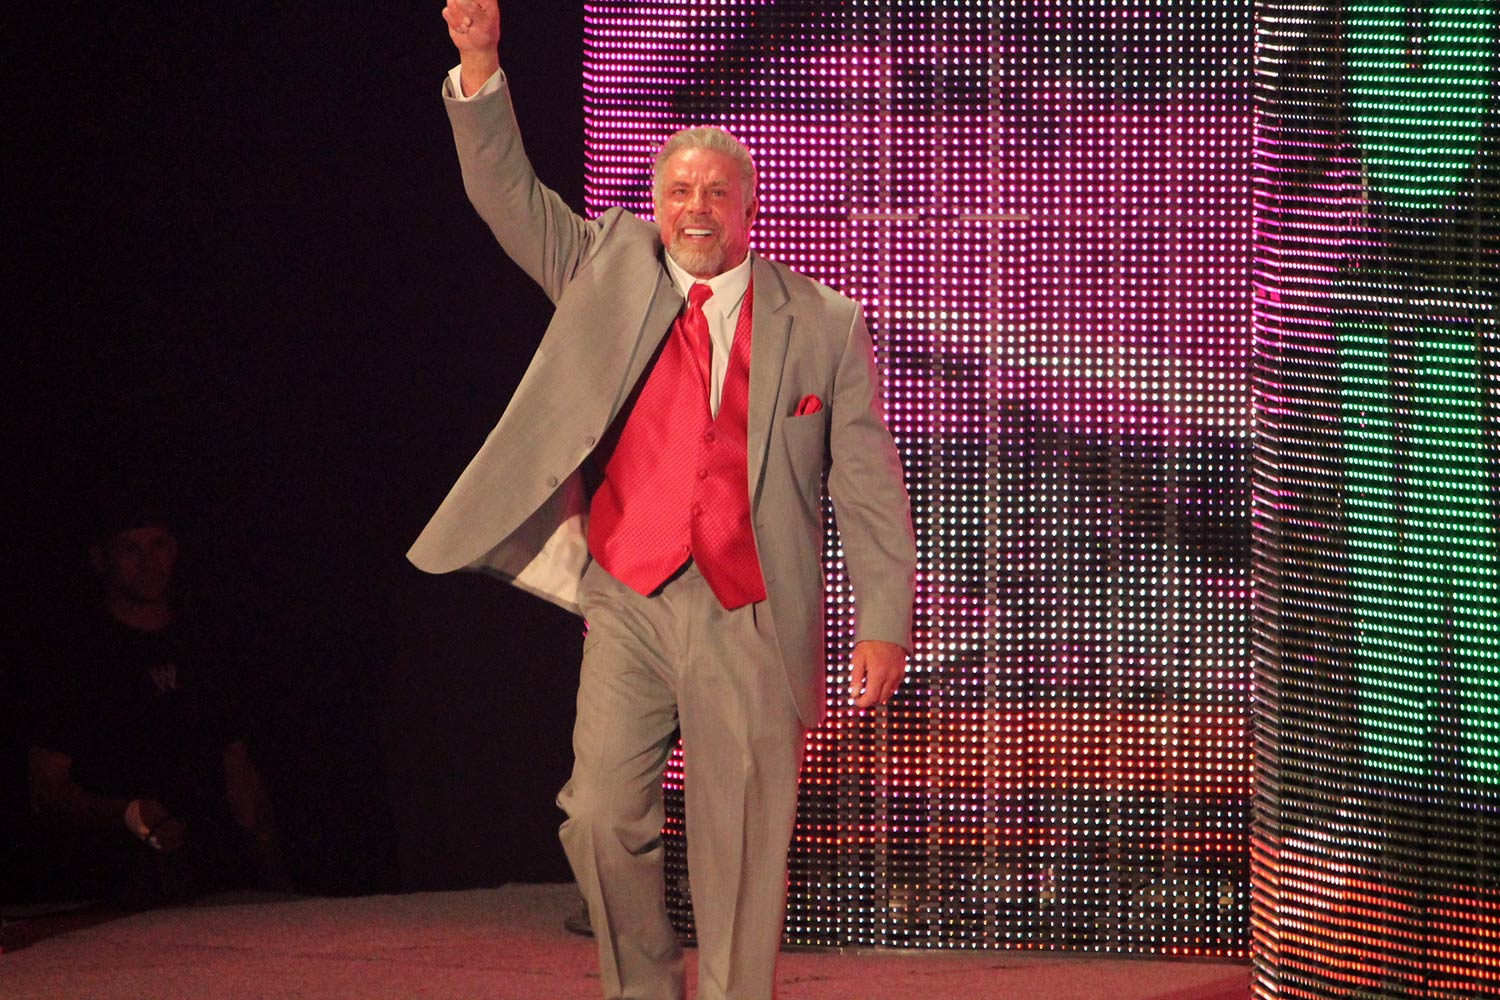 The Ultimate Warrior is inducted to the WWE Hall of Fame, April 7, 2014